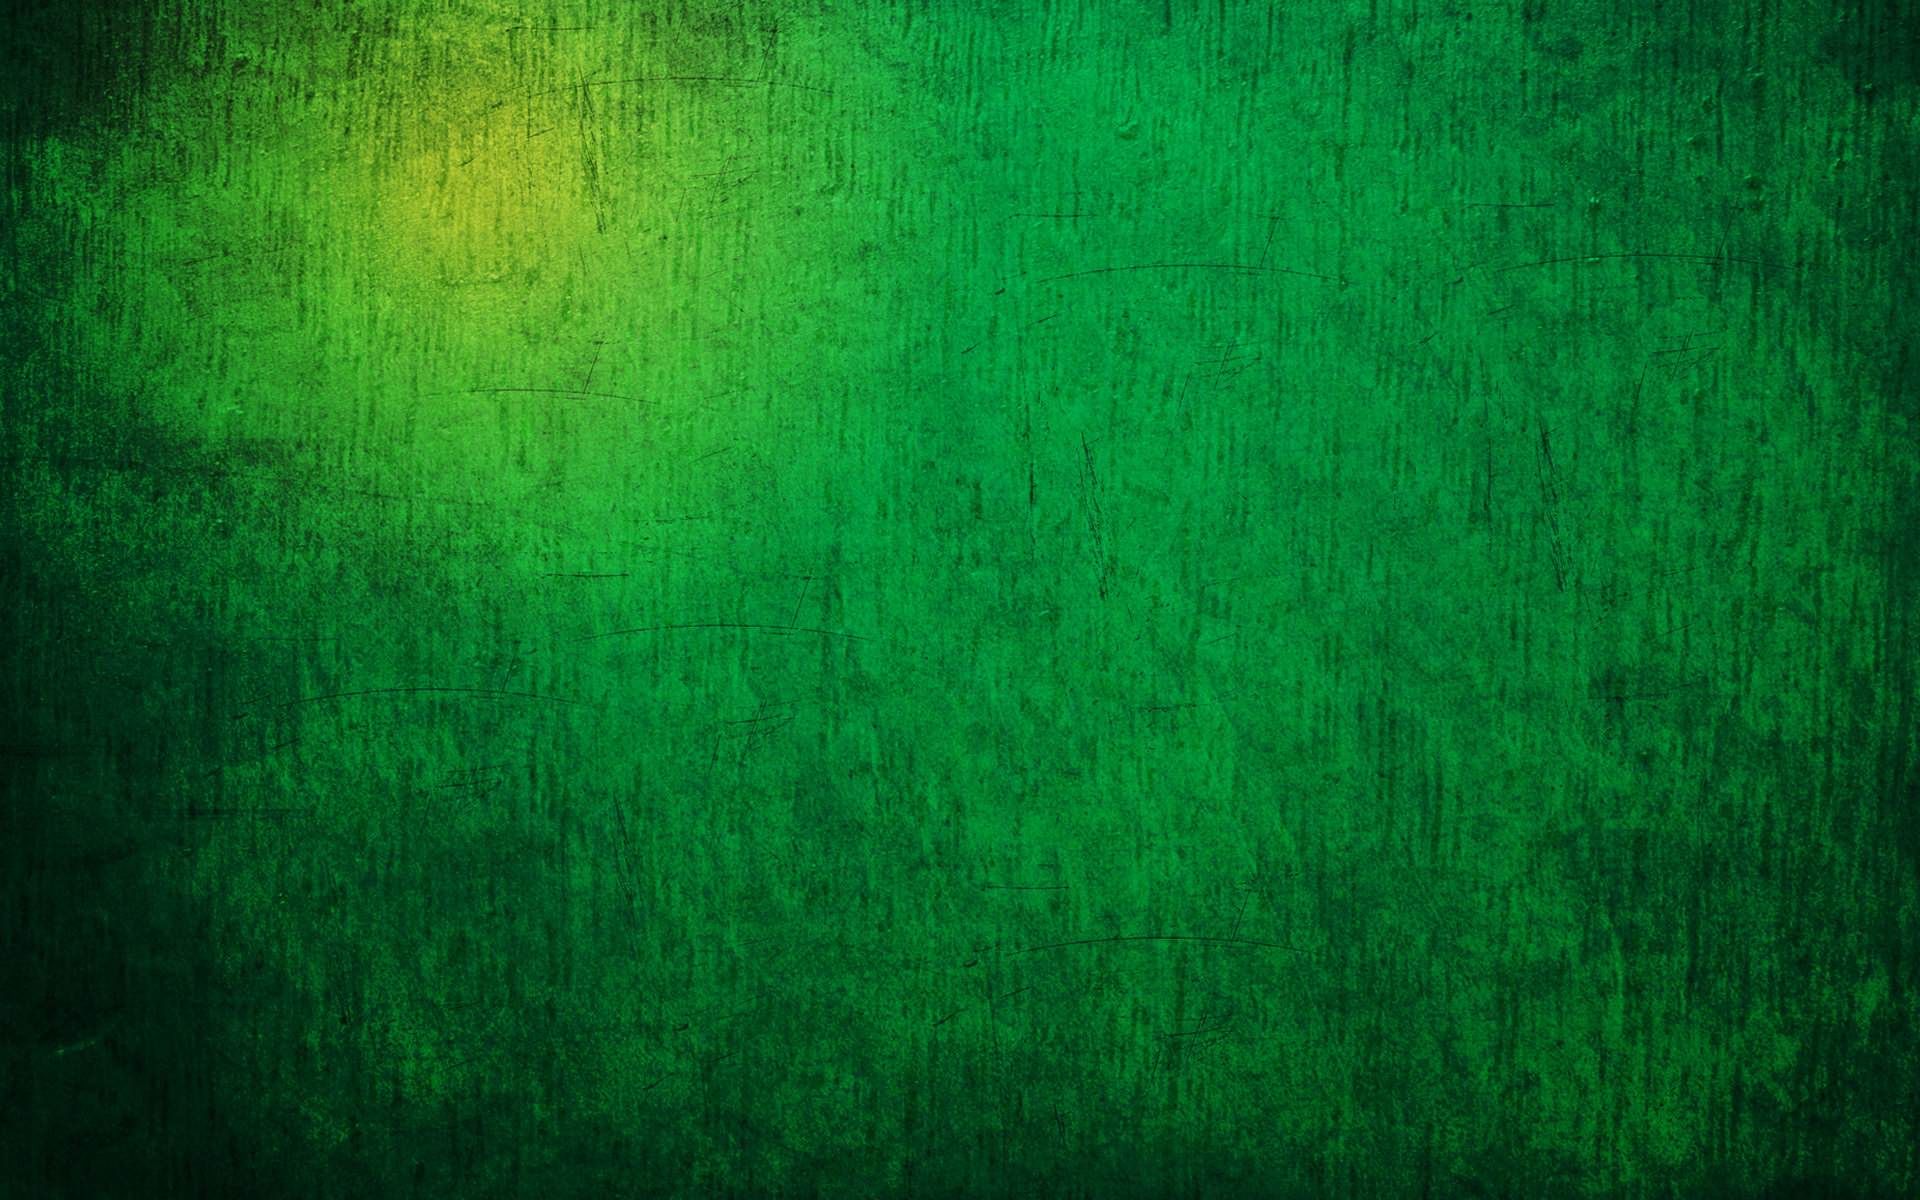 Green Background Art PPT Backgrounds